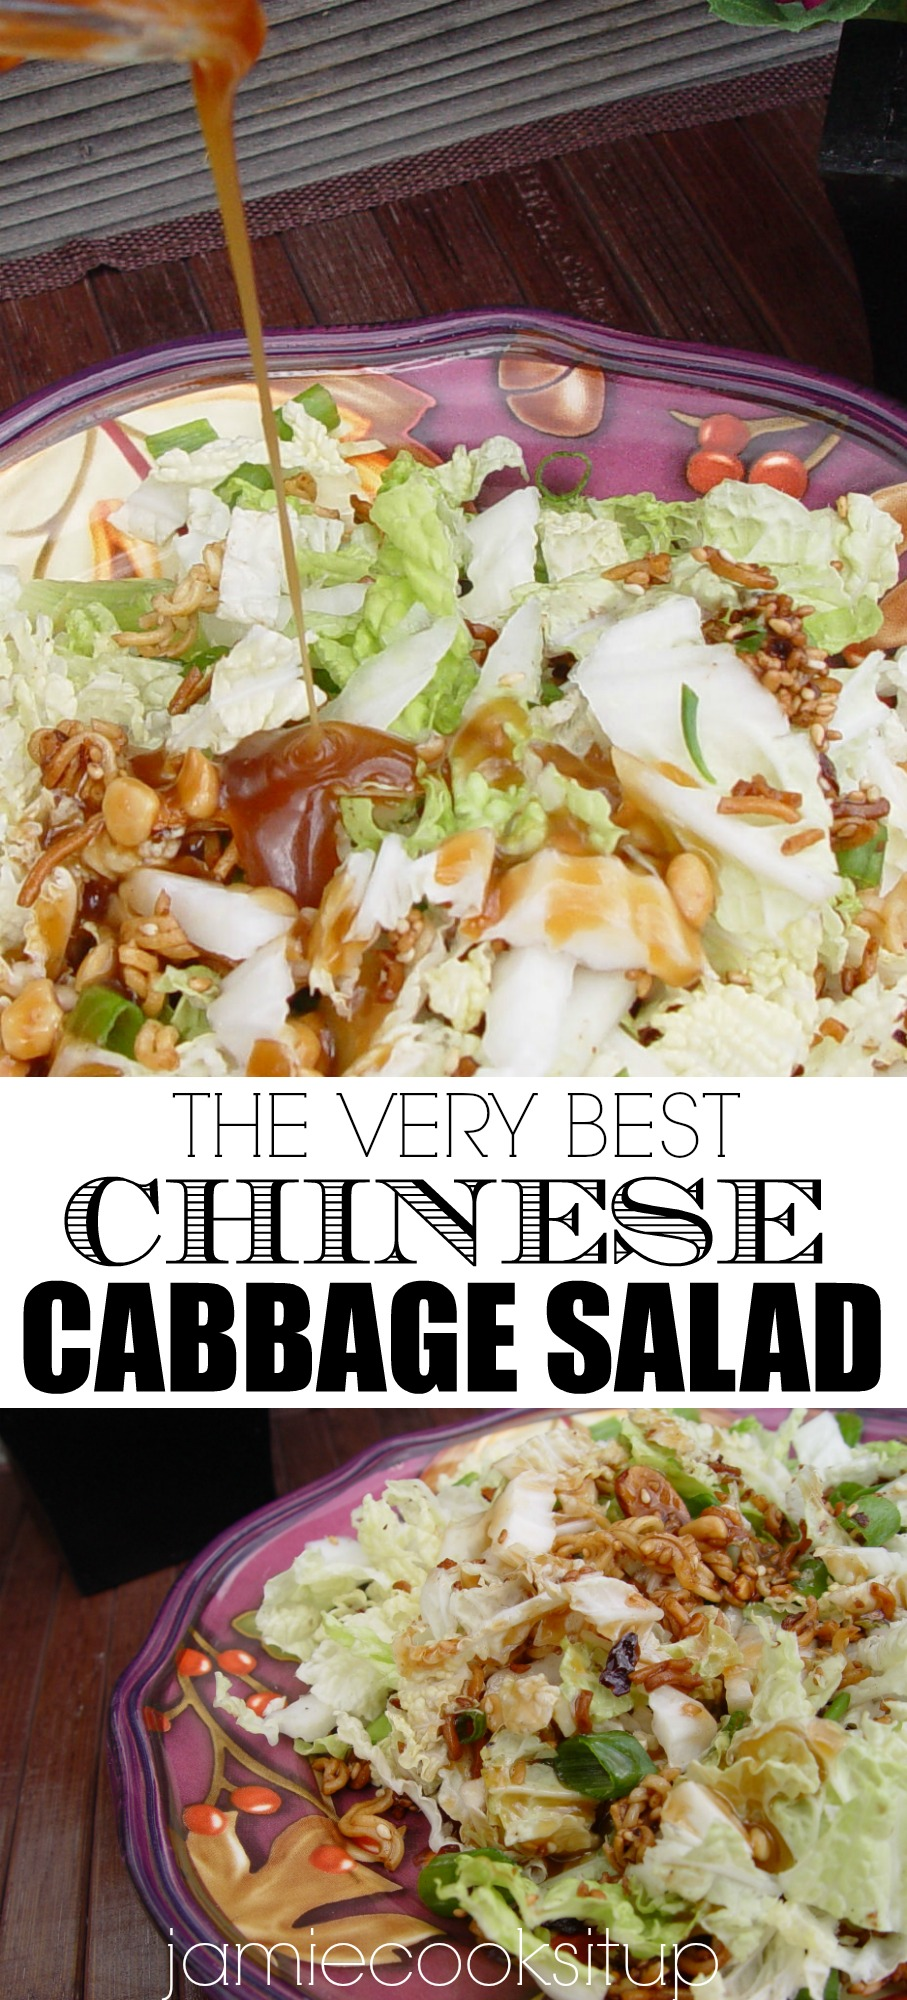 Chinese Cabbage Salad Jamie Cooks It Up Family Favorite Food And Recipes